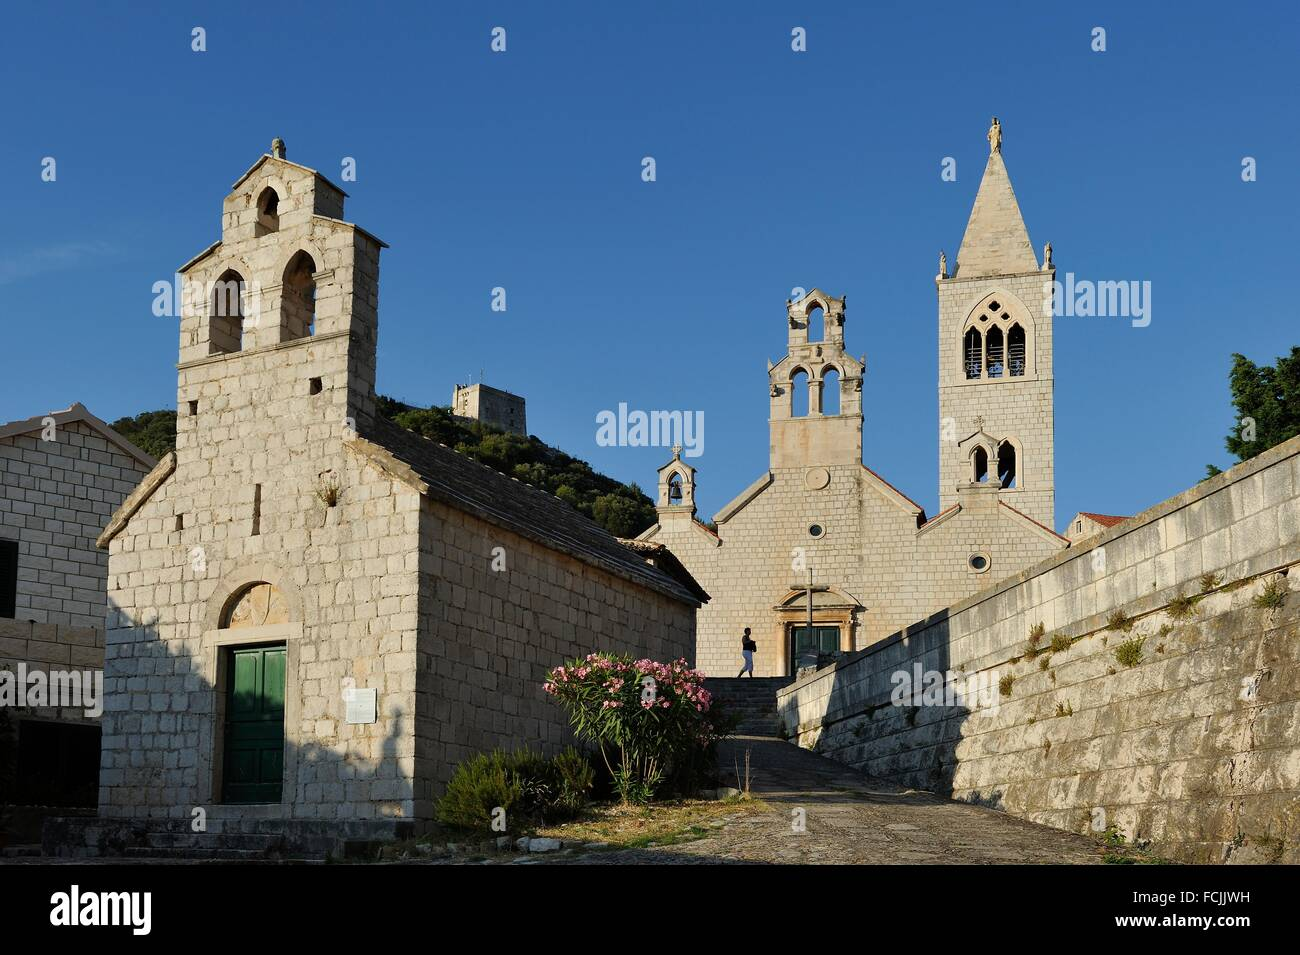 church of Saint Blaise 12th century in front of the church of Saint Cosmas and Saint Damian 14th century, Lastovo - Stock Image